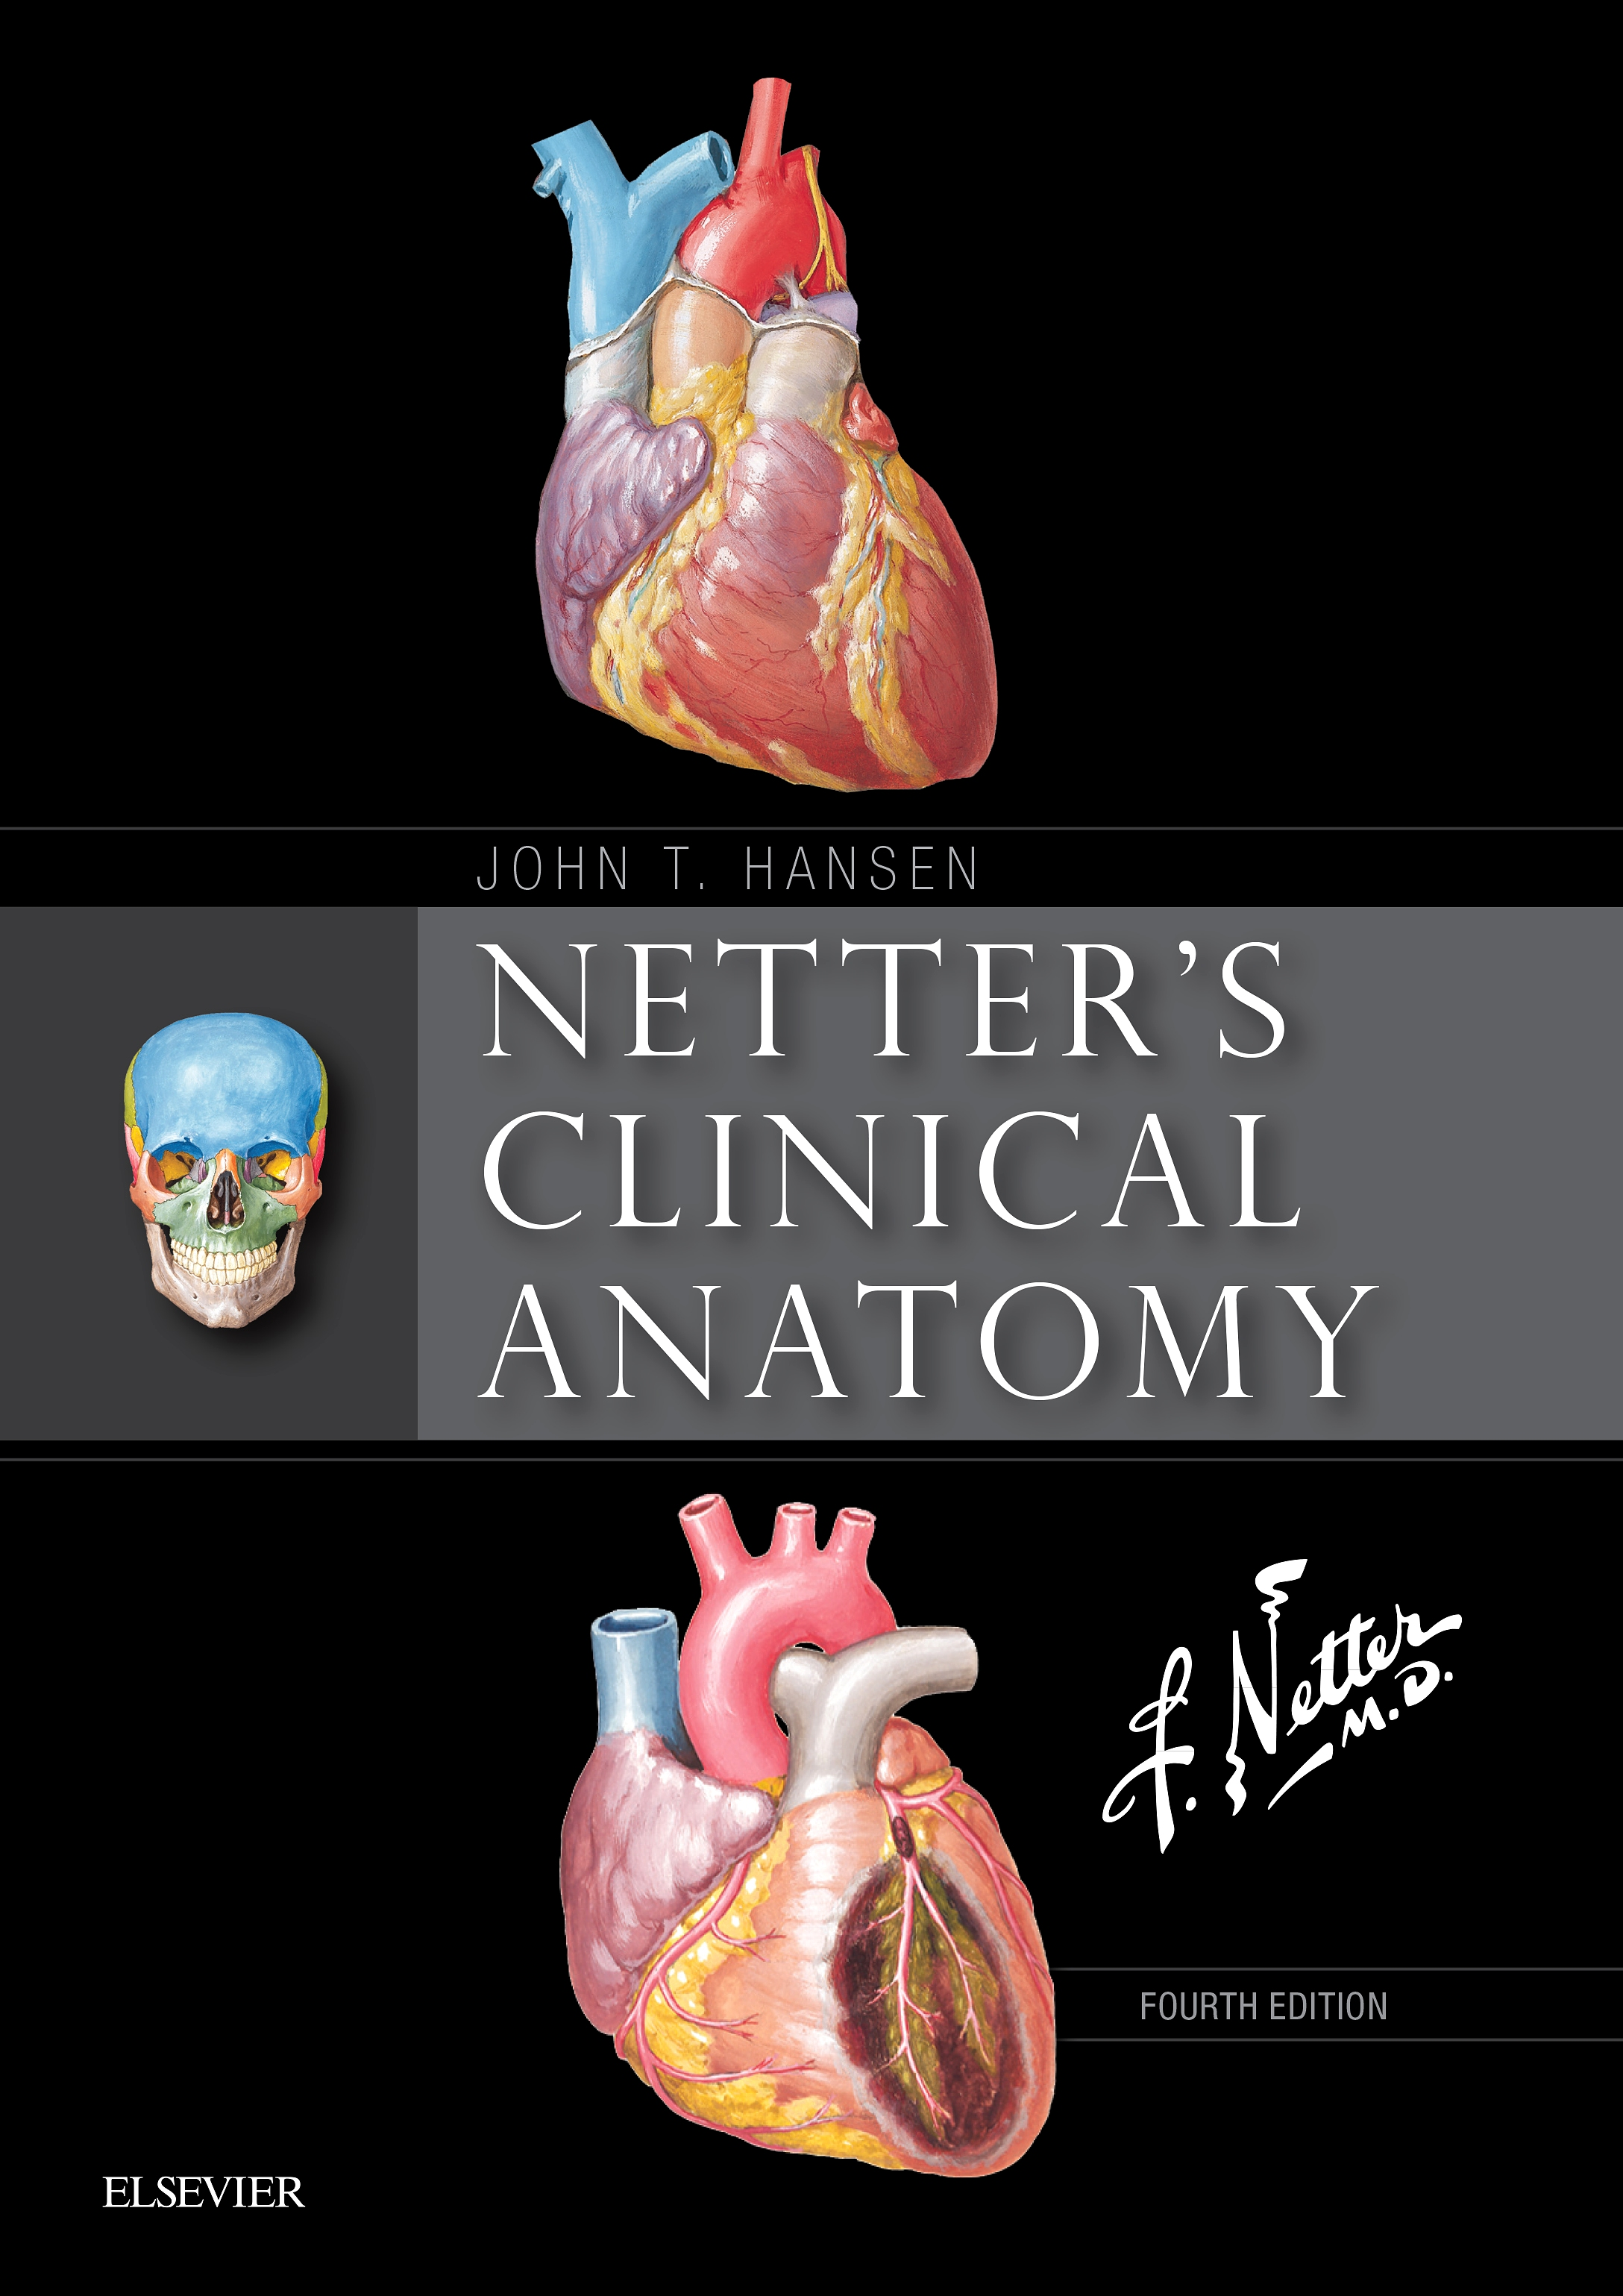 Evolve Resources for Netter's Clinical Anatomy, 4th Edition